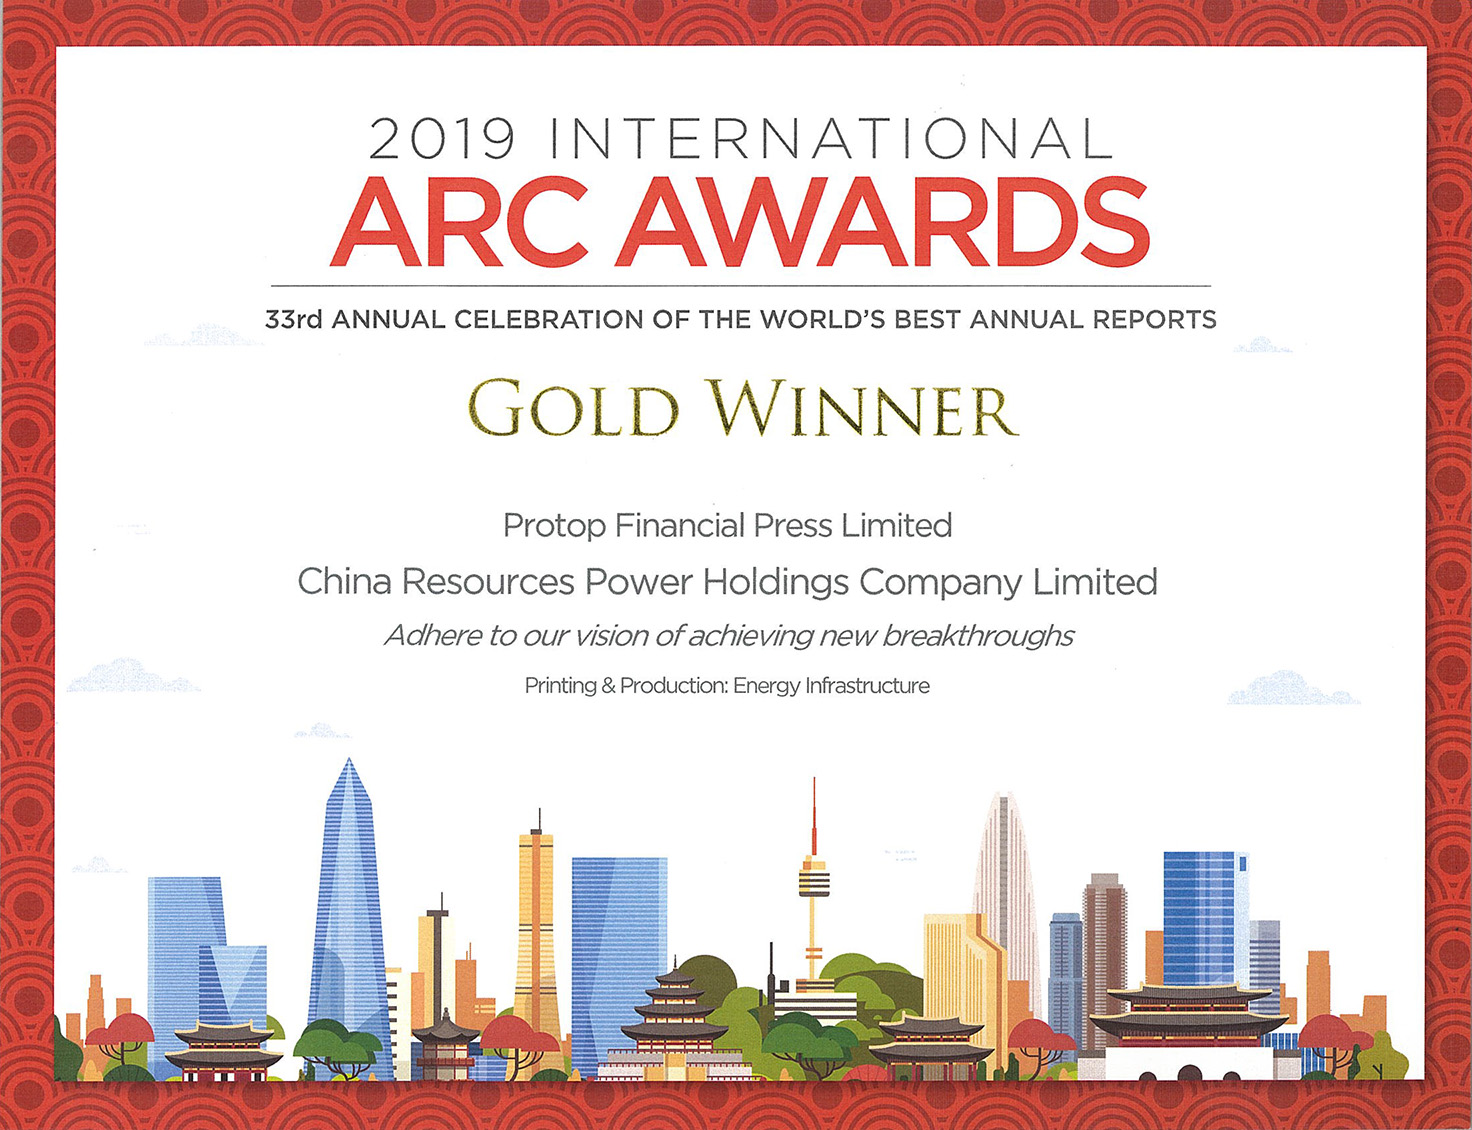 華潤電力控股有限公司 – 2019 ARC AWARDS GOLD WINNER Printing & Production: Energy Infrastructure